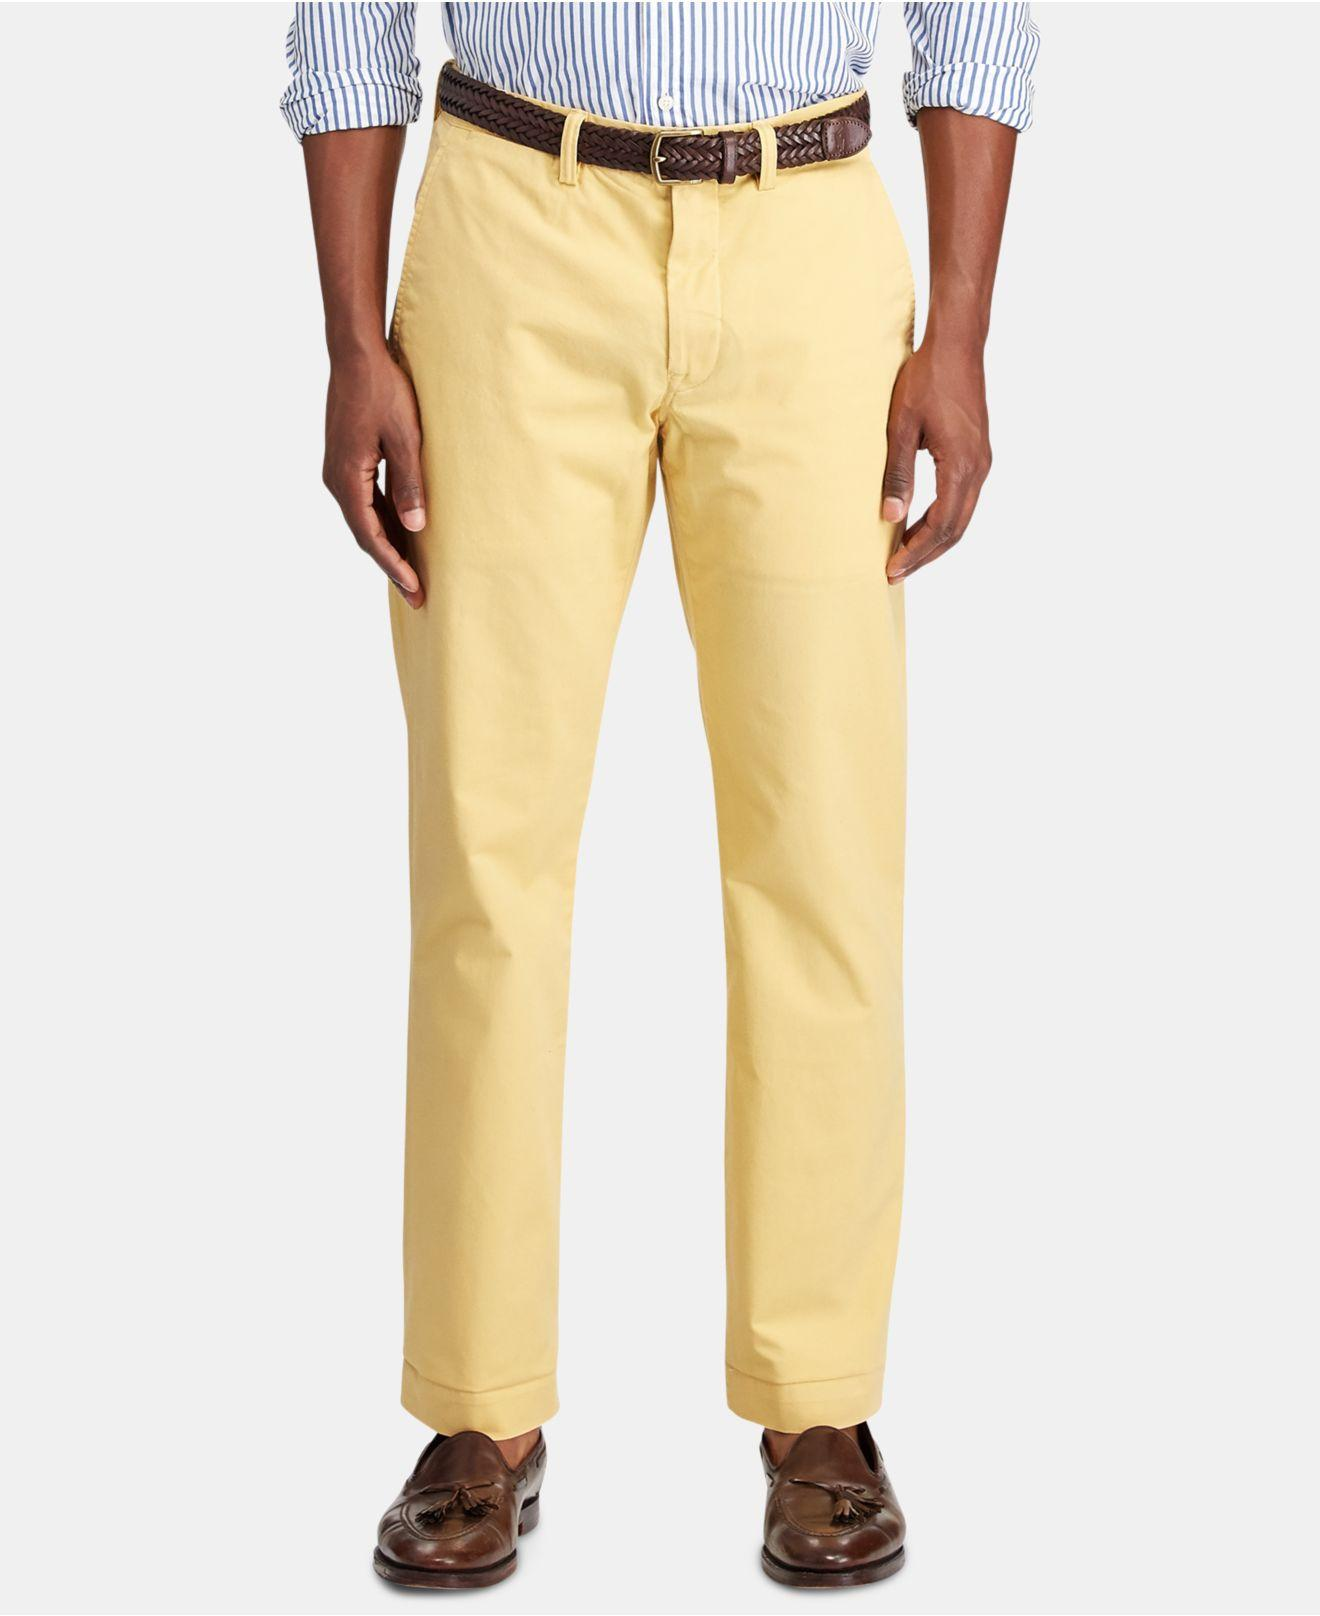 f29570ac Polo Ralph Lauren - Yellow Big & Tall Classic Fit Chino Pants for Men -  Lyst. View fullscreen